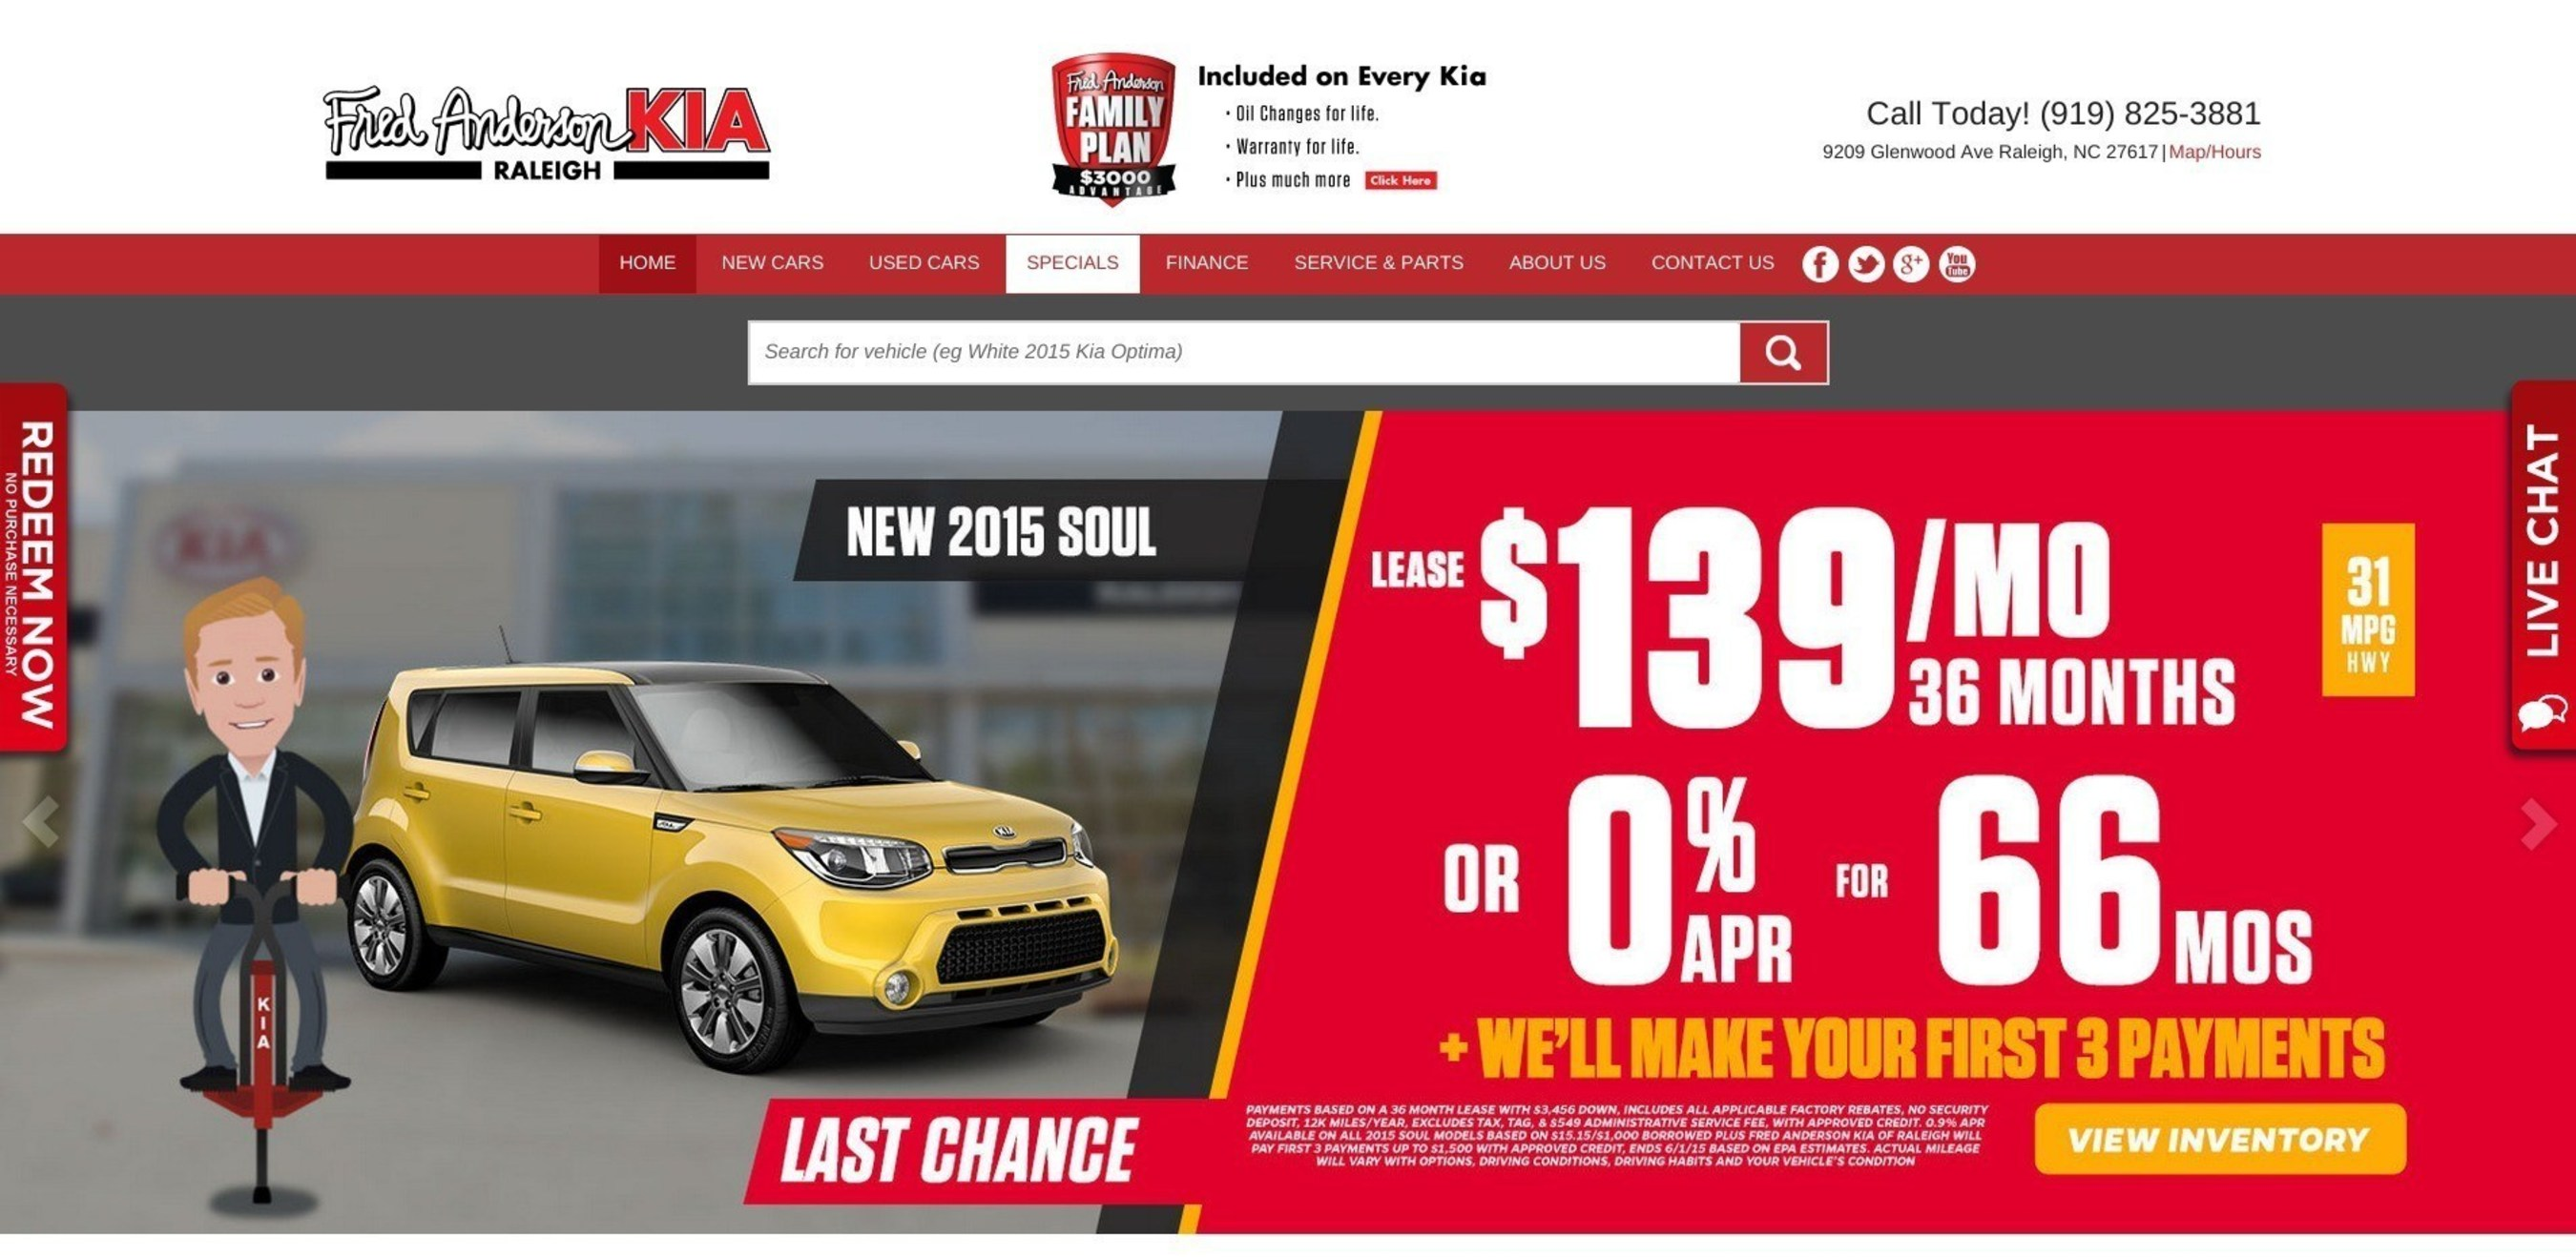 Fred Anderson Kia unveils new, responsive website